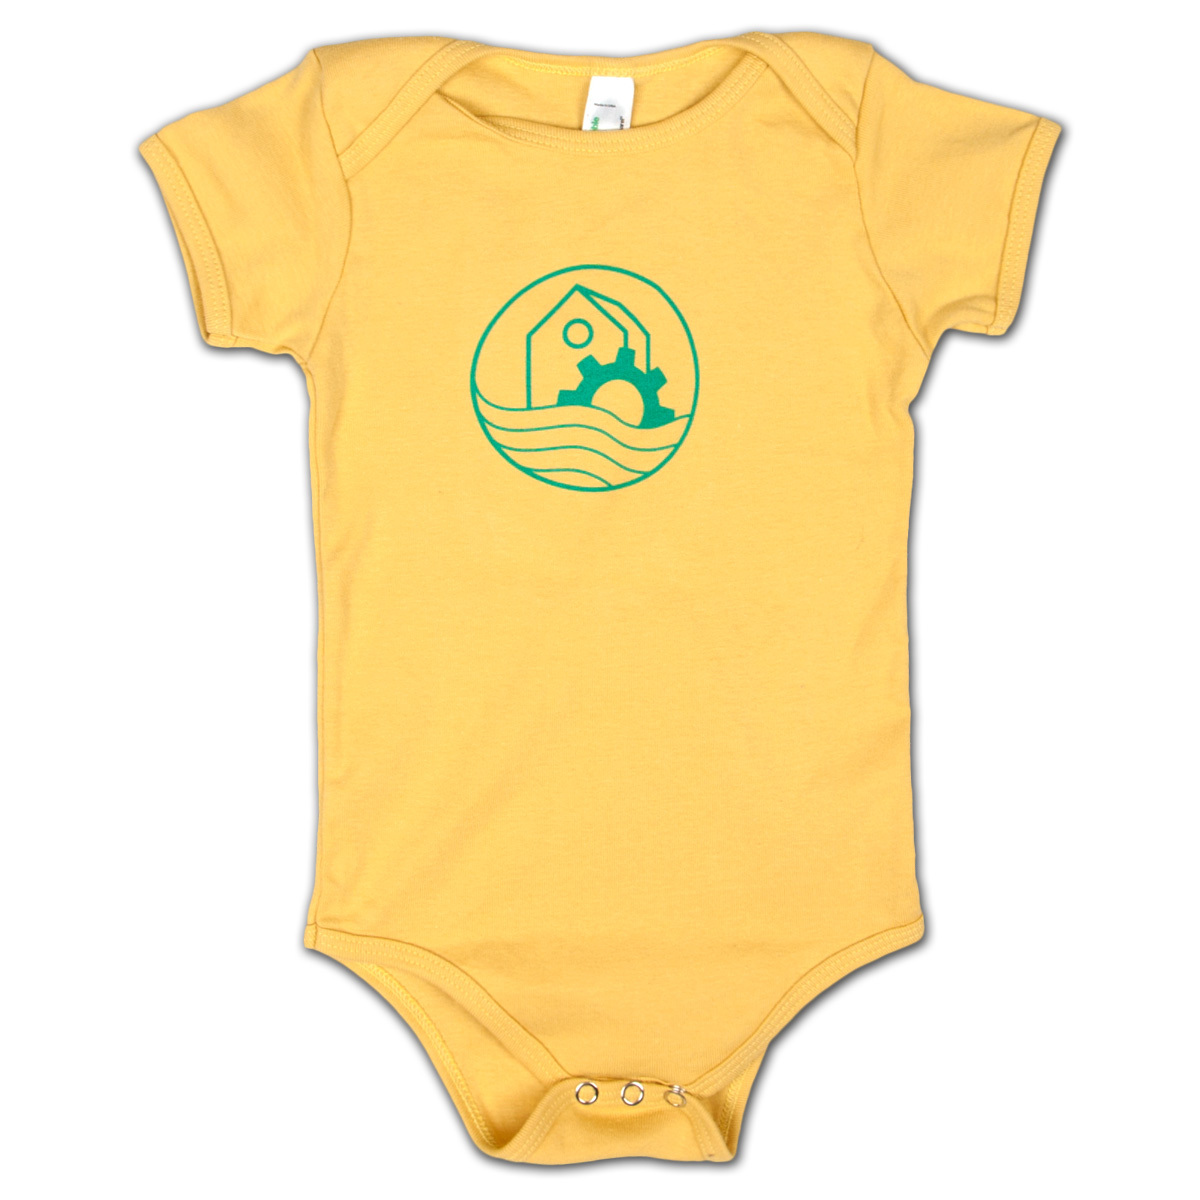 WaterWheel Baby Onesie on Dijon